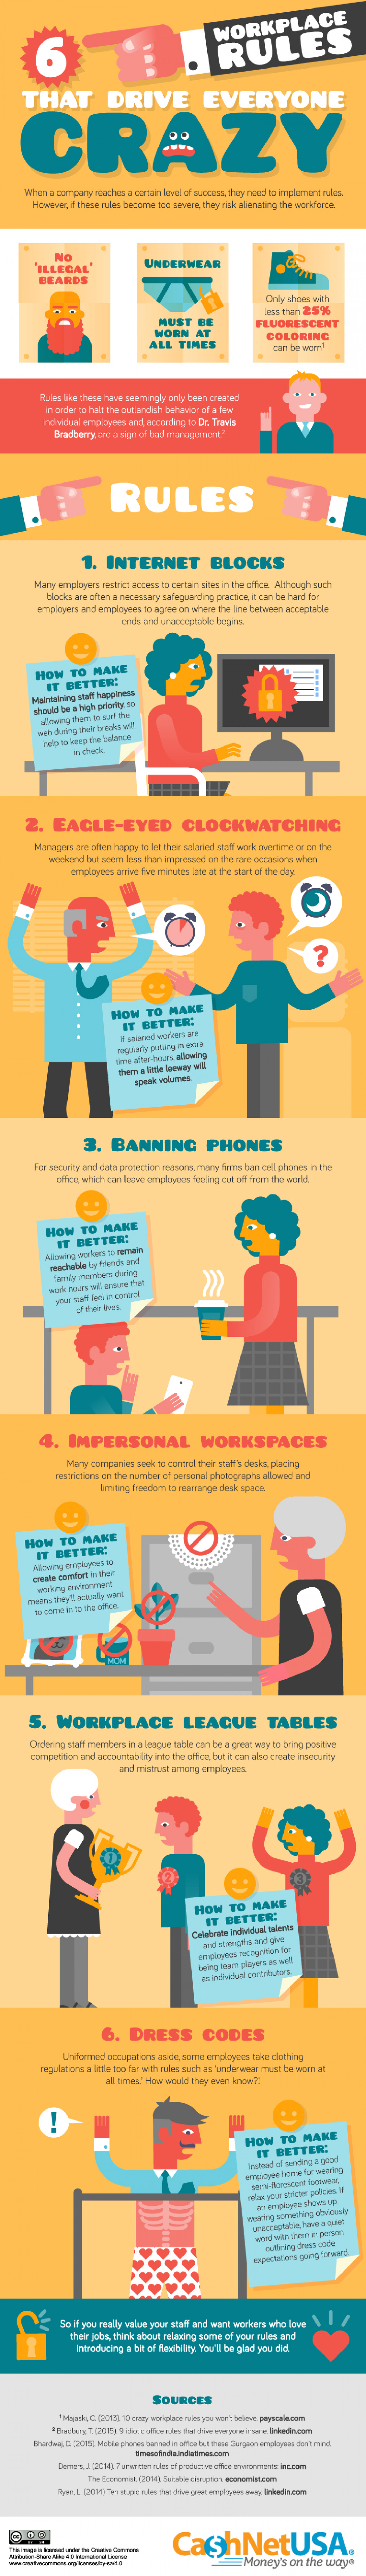 6 Workplace Rules That Drive Everyone Crazy Infographic